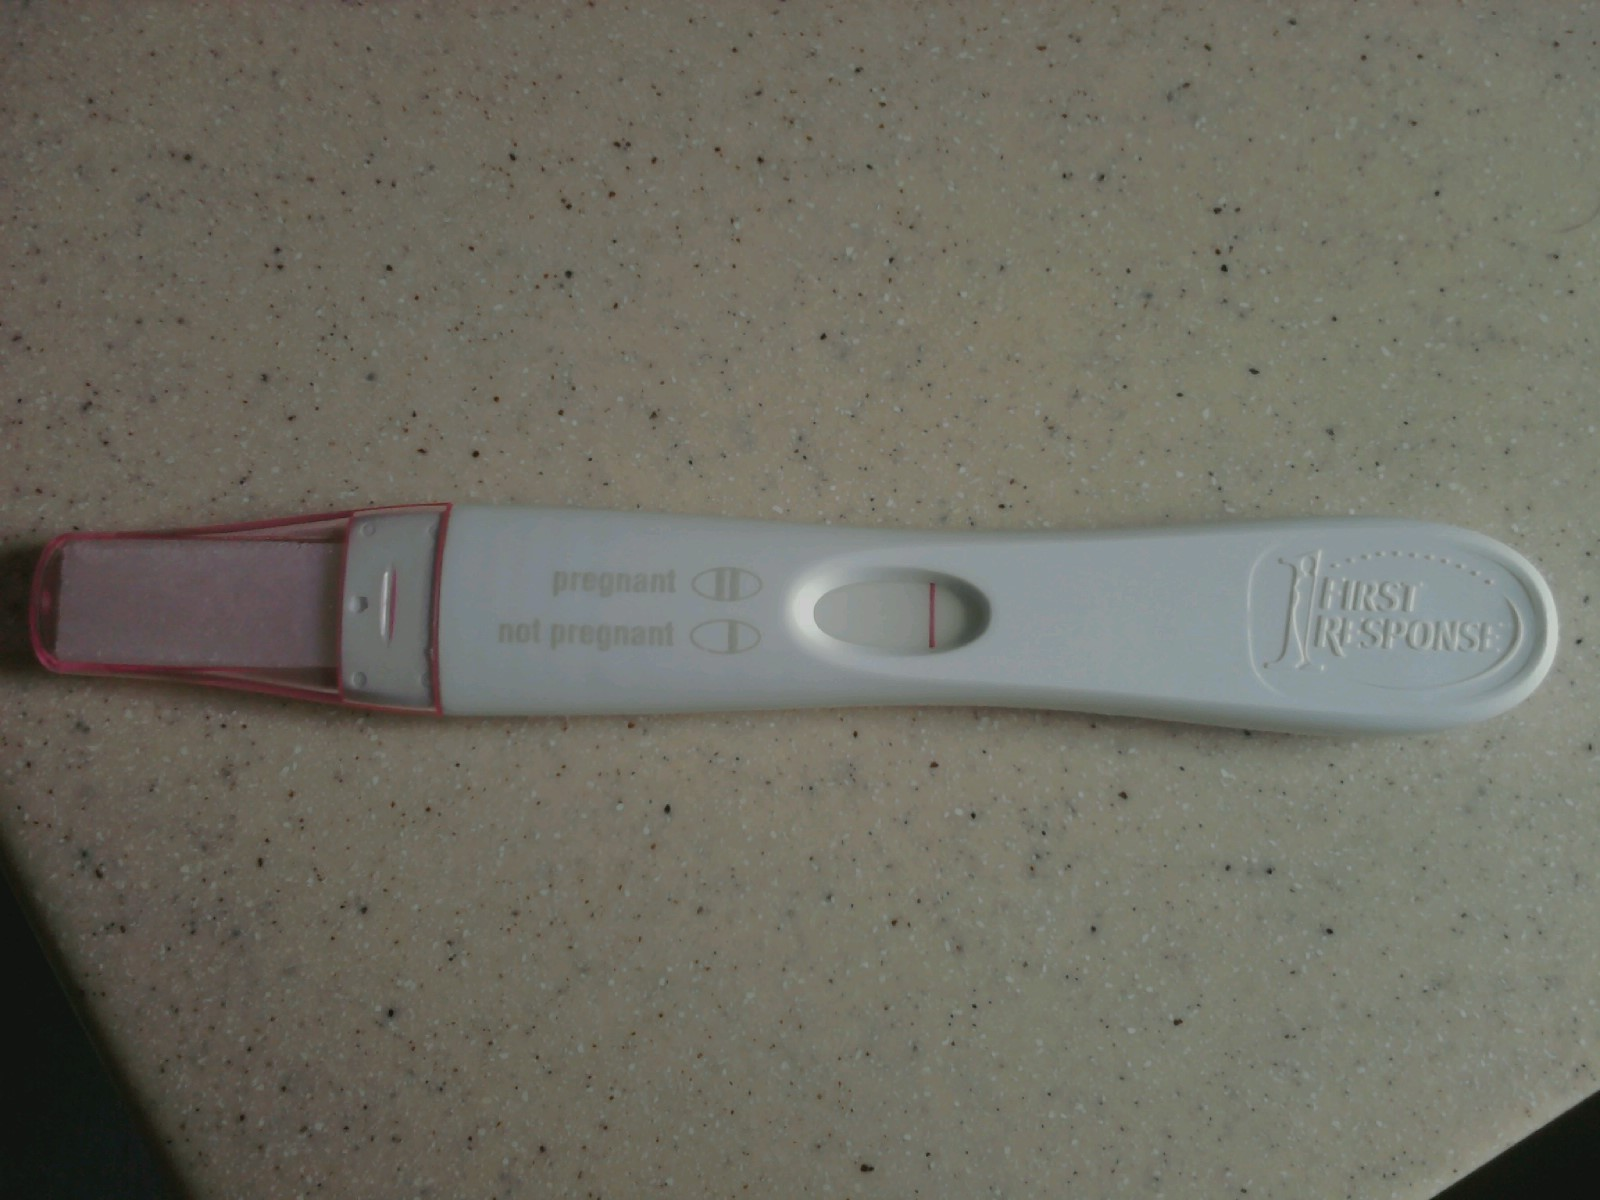 13 dpo - BFN | My Life is About the Journey